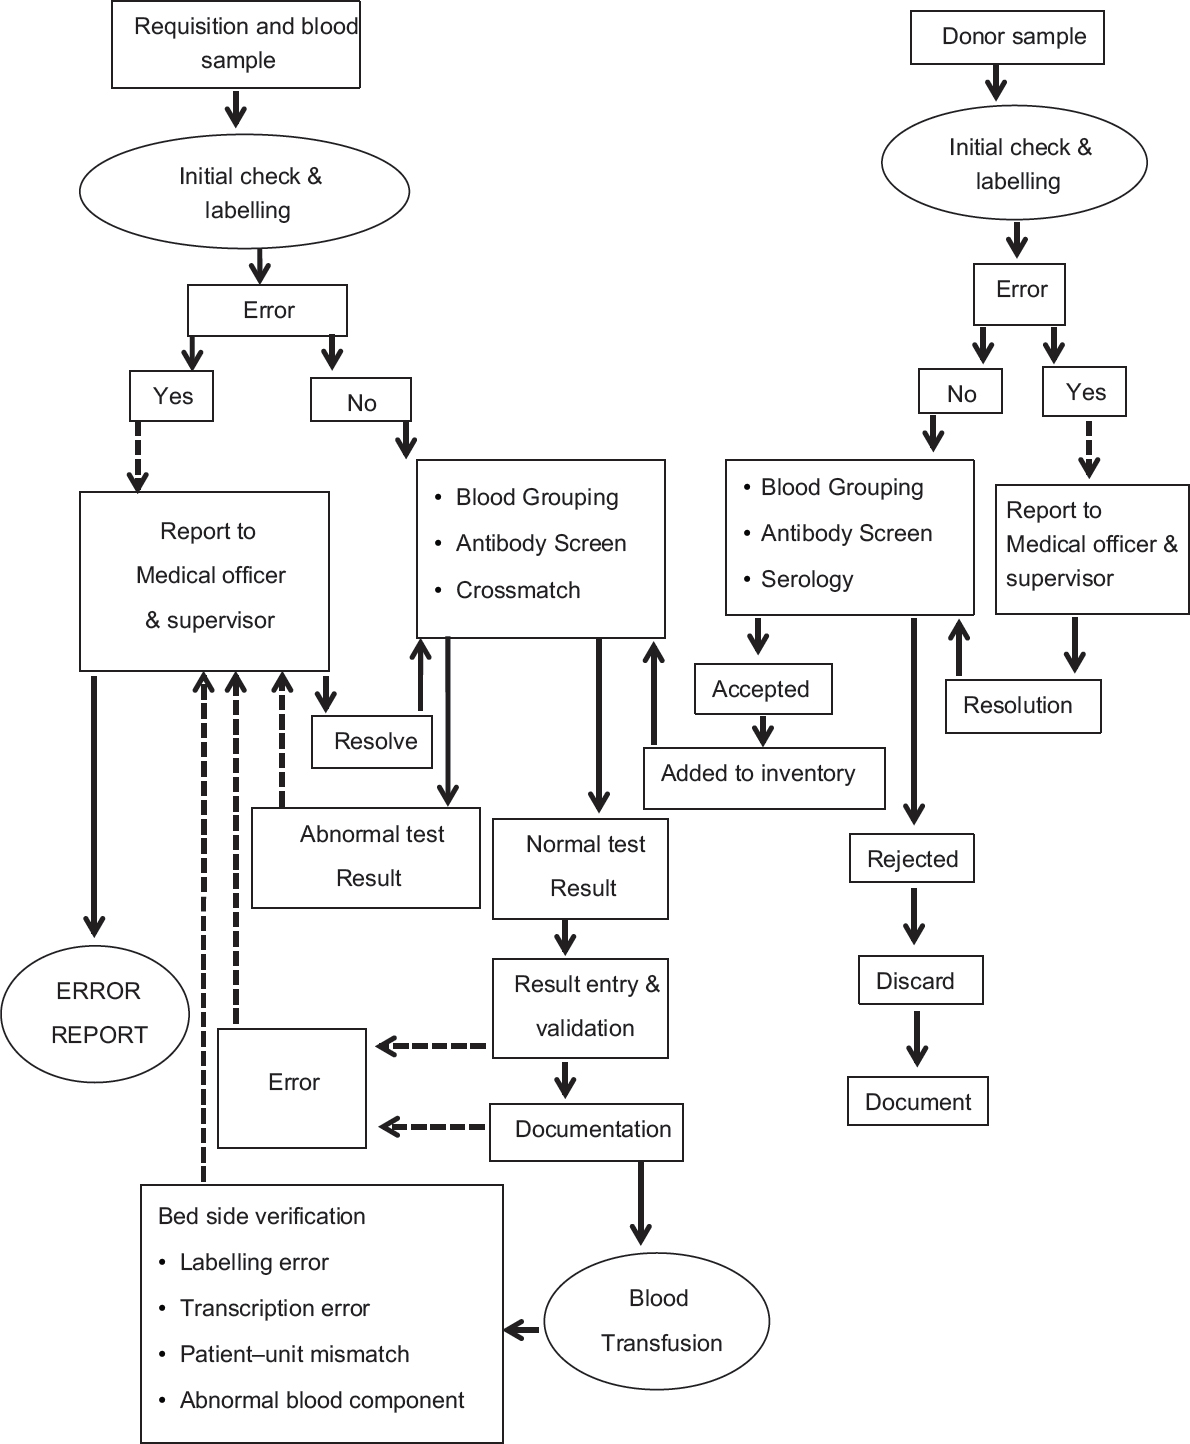 Global journal of transfusion medicine table of contents monitoring errors in a blood bank immunohematology laboratory implementing strategies for safe blood transfusion ccuart Choice Image